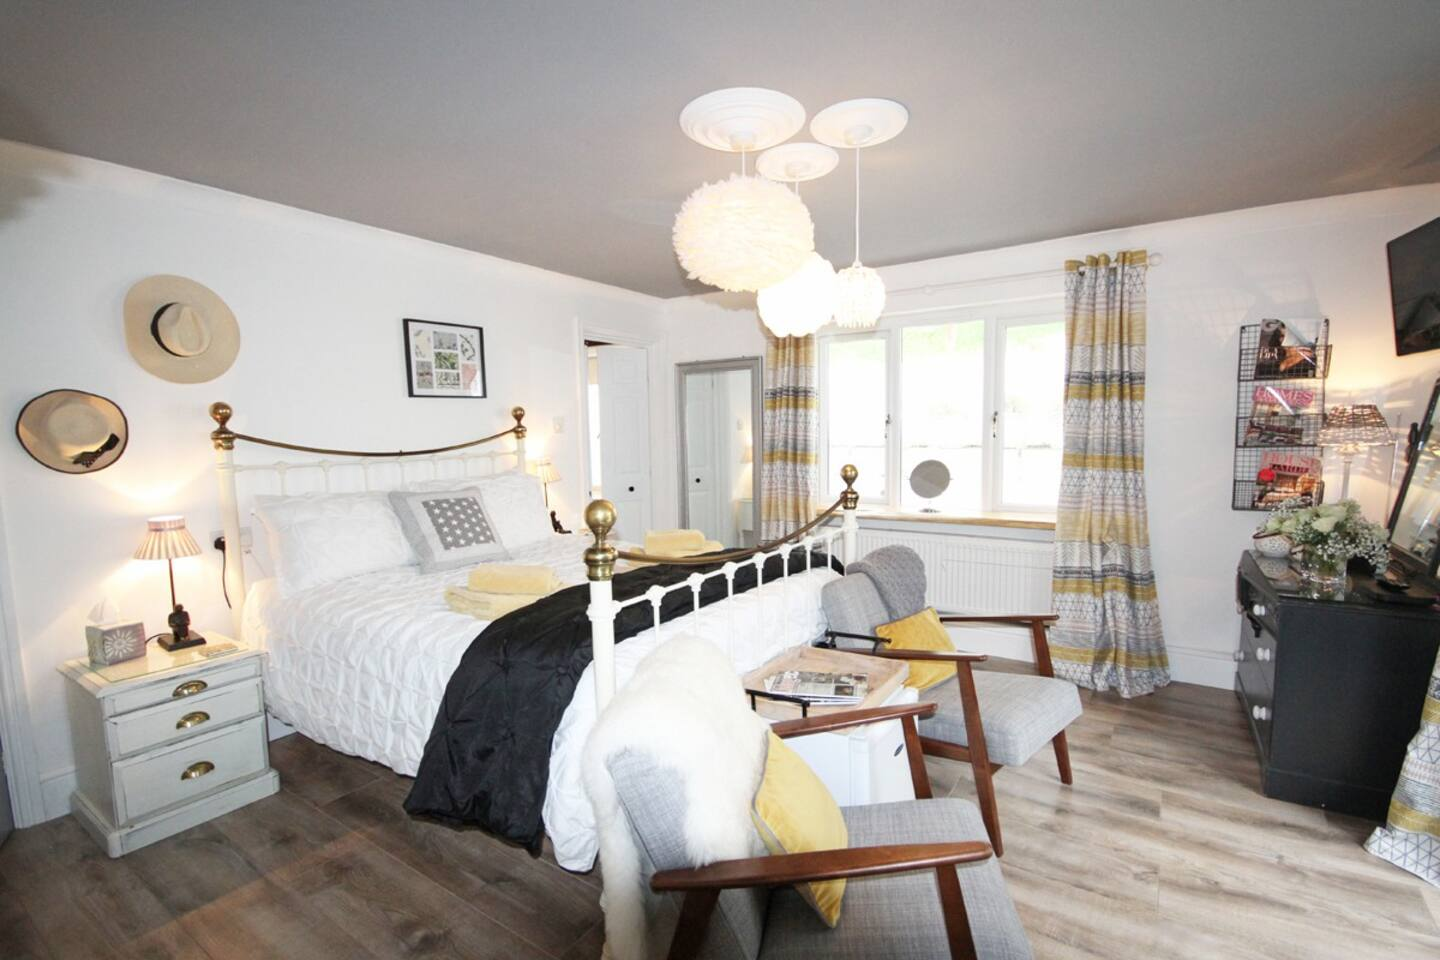 Little Mallards - Guest suites for Rent in Cornwall